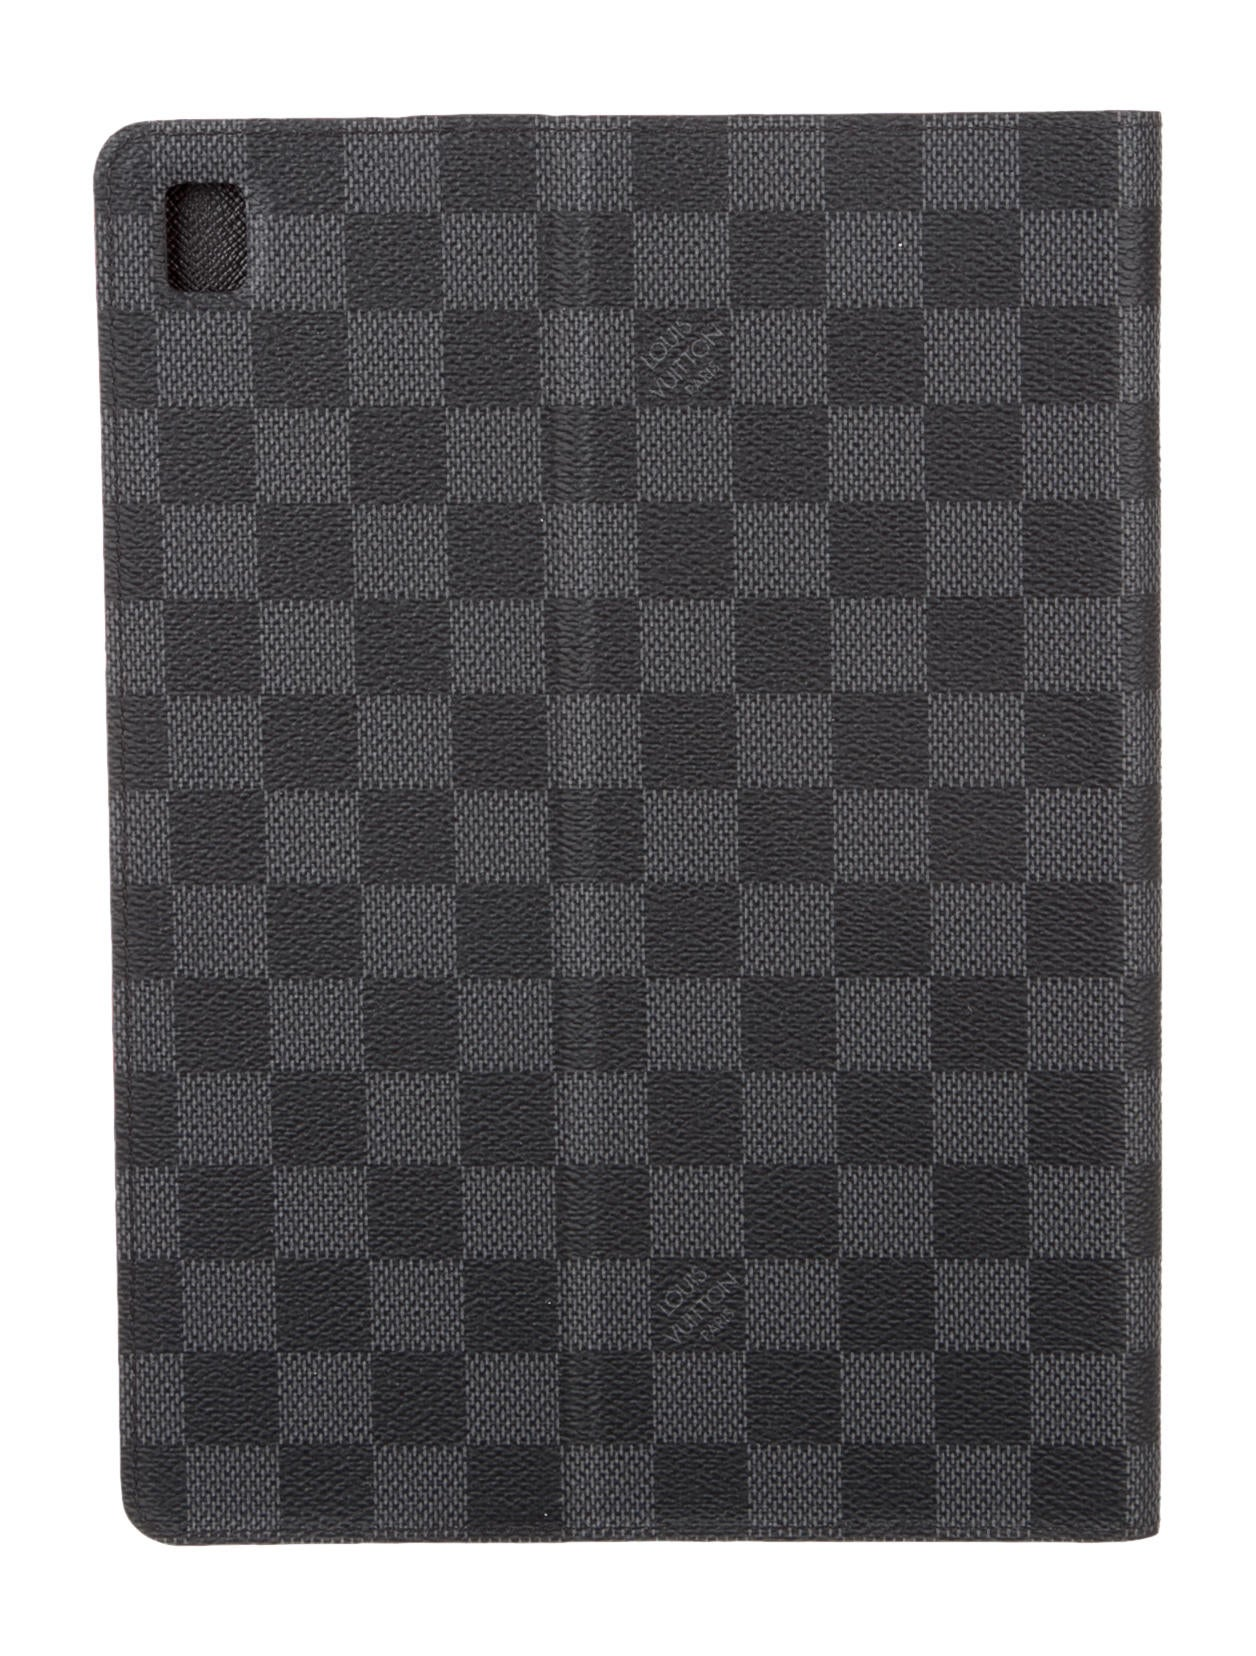 Louis Vuitton Damier Graphite Ipad Pro Folio Technology